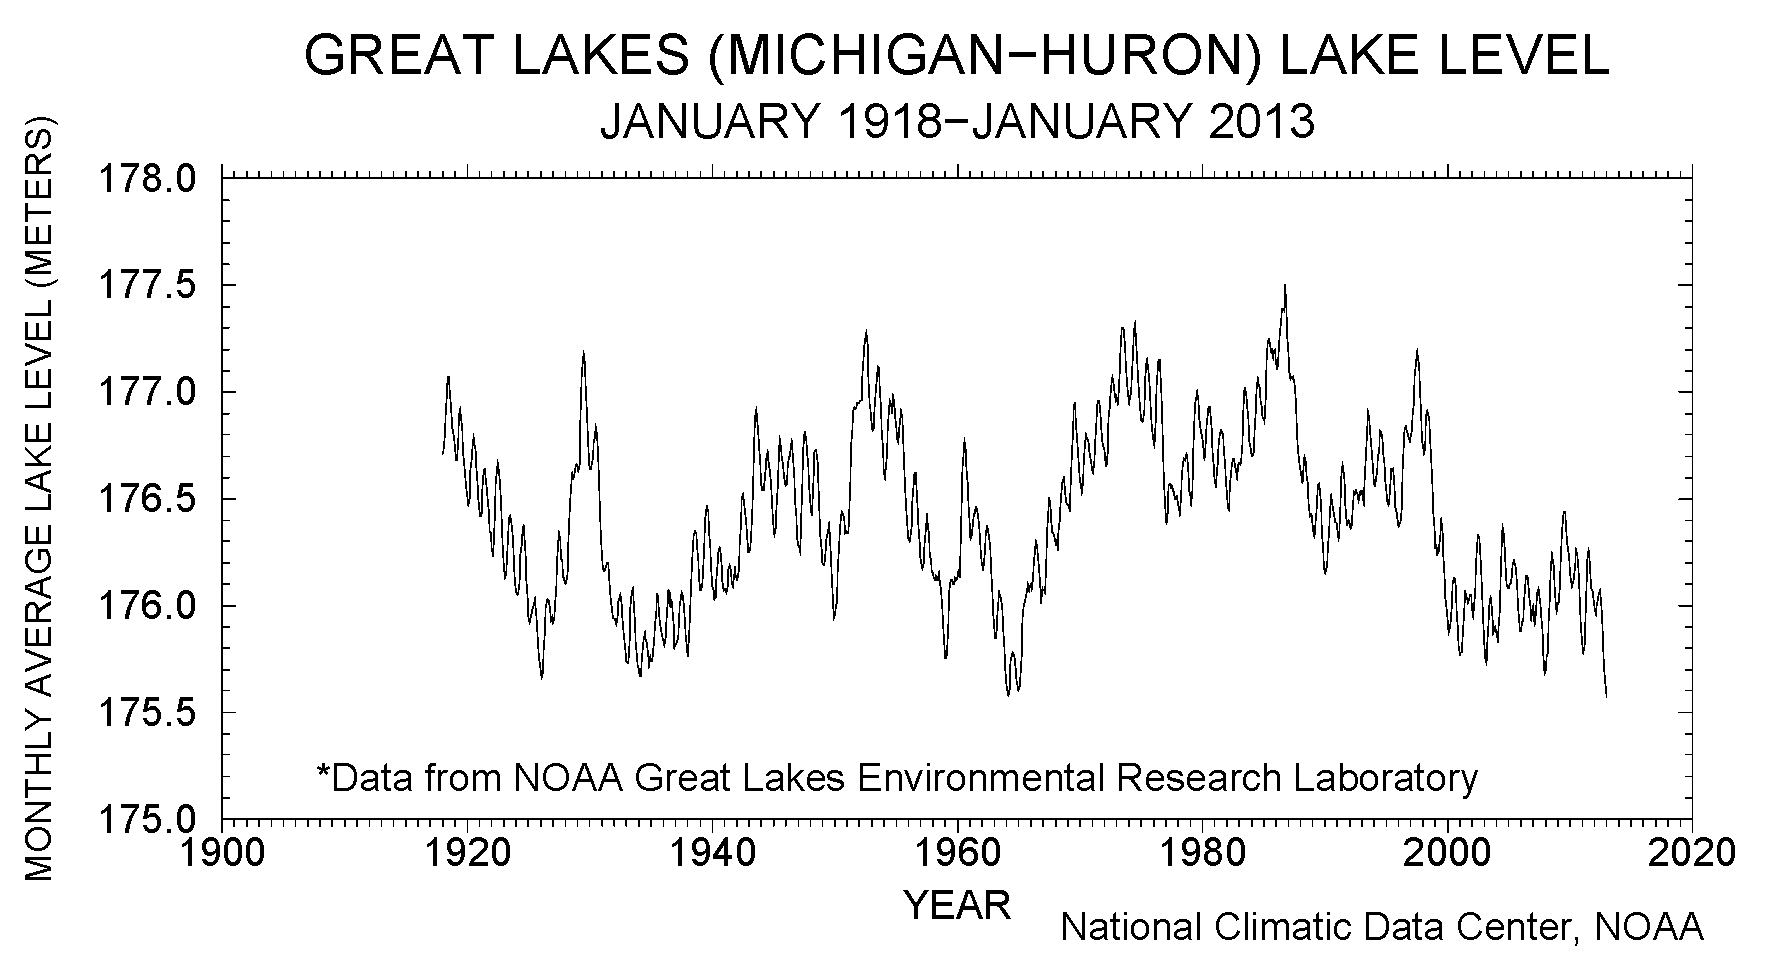 Monthly level (meters) of Great Lakes Michigan and Huron, January 1918-January 2013